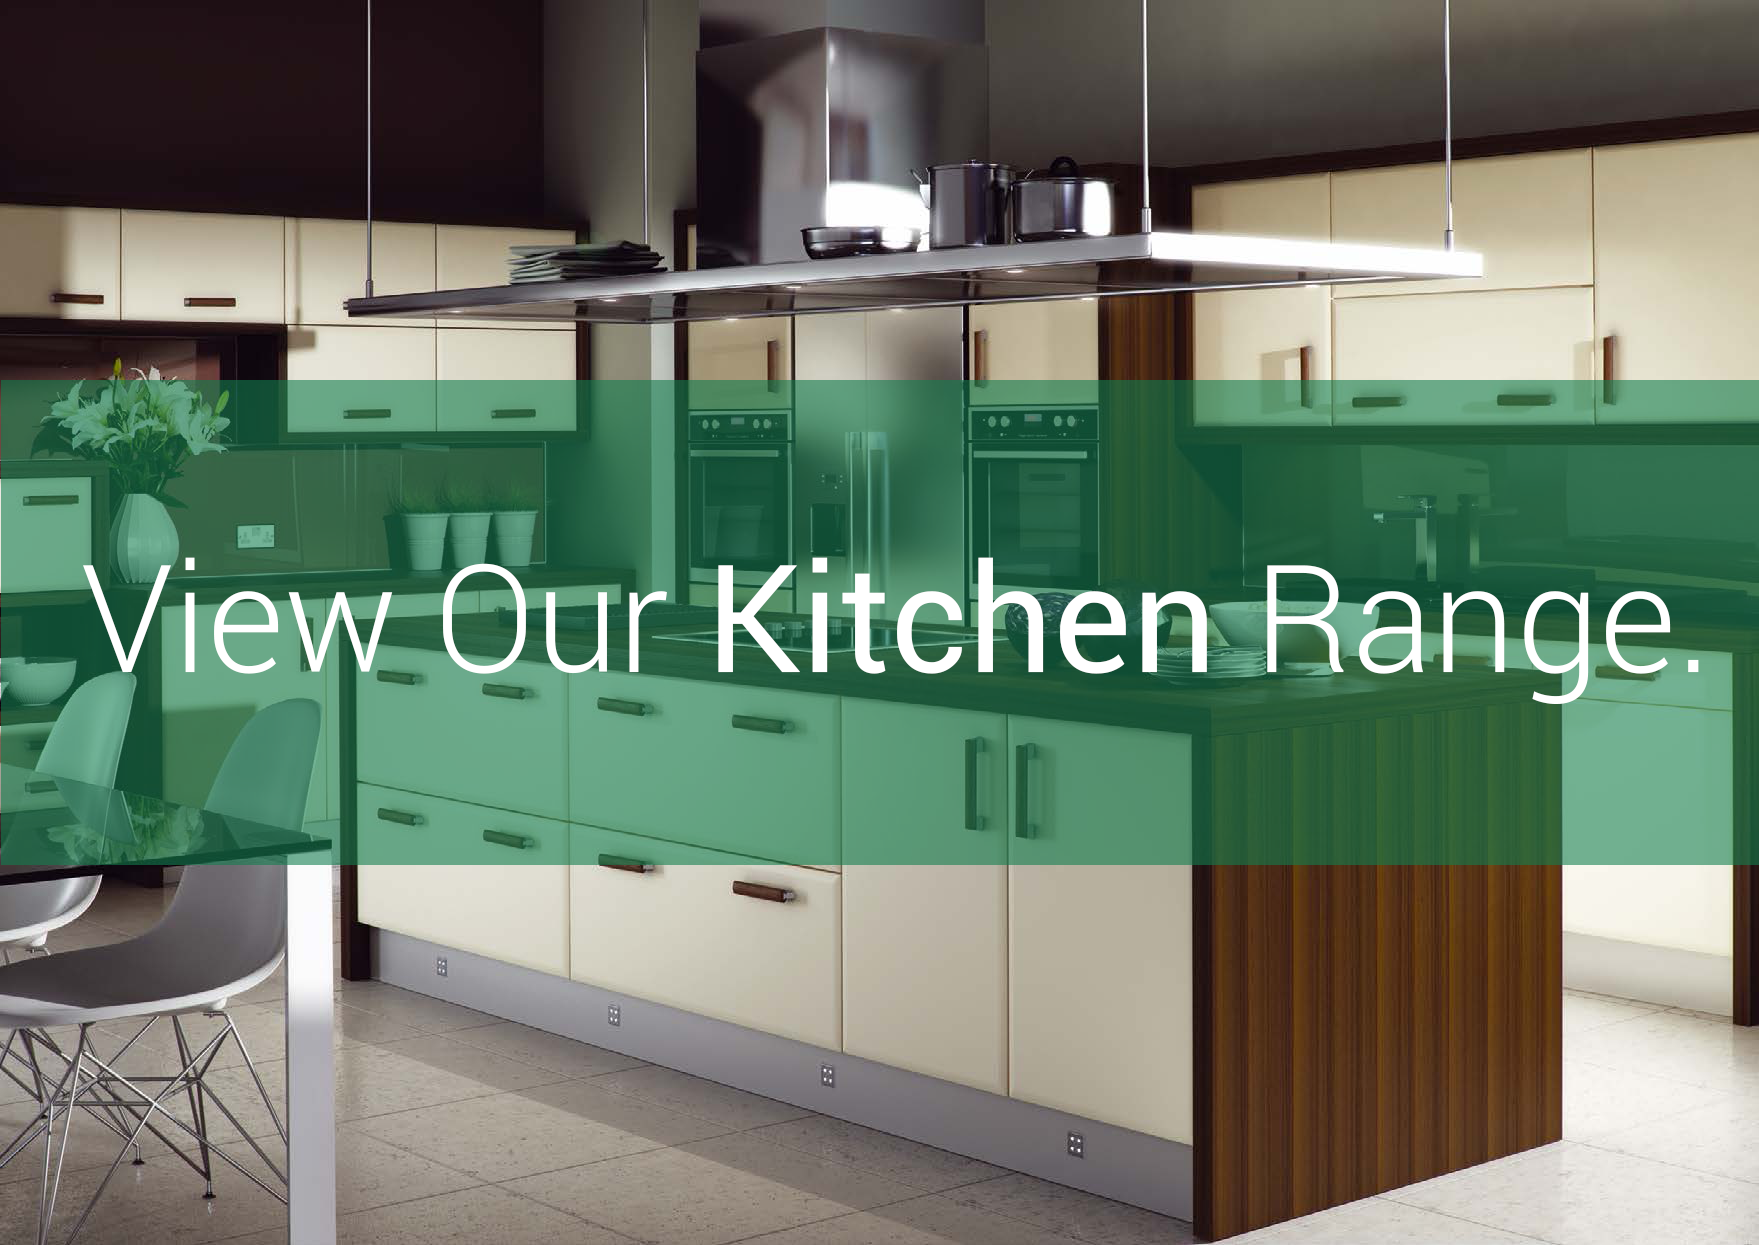 kitchen-homepage